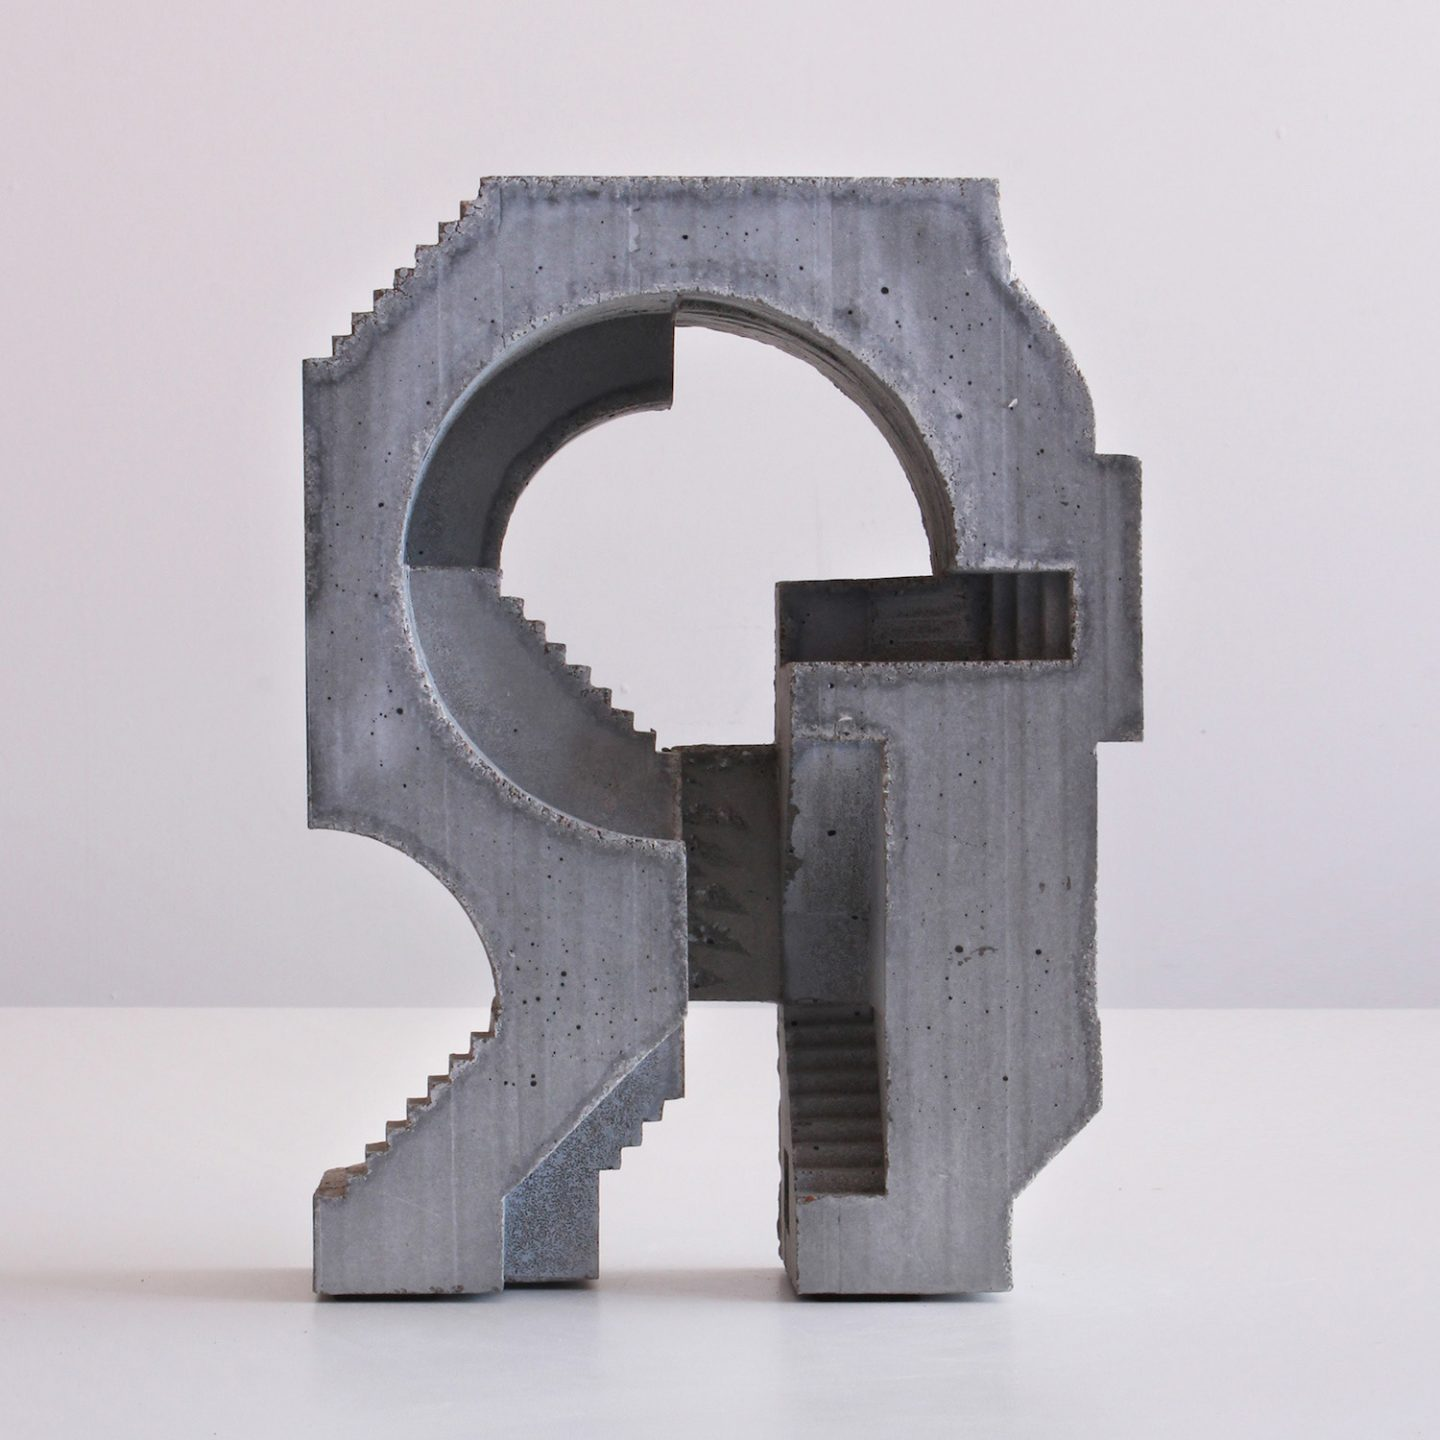 iGNANT_Art_Concrete_Modular_Sculptures_David_Umemoto04